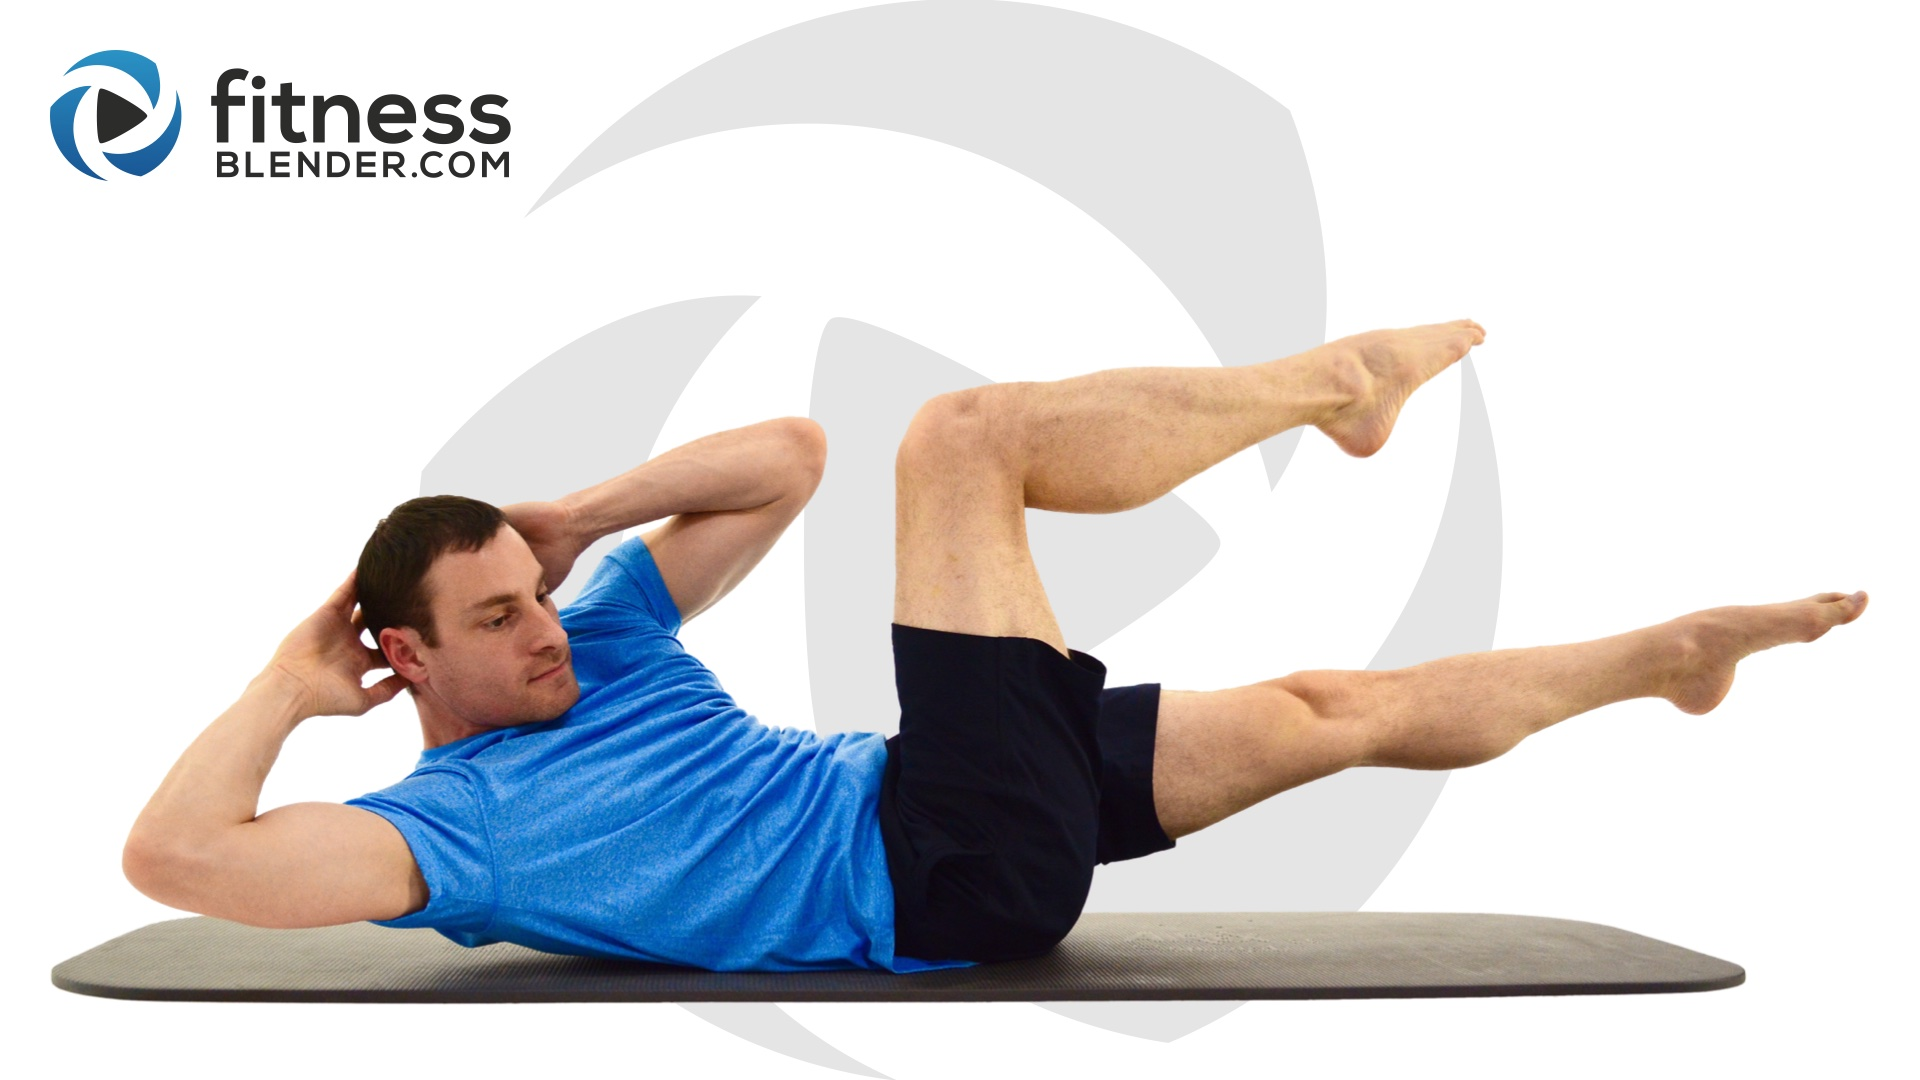 fitness blender 15 minute abs workout at home core training